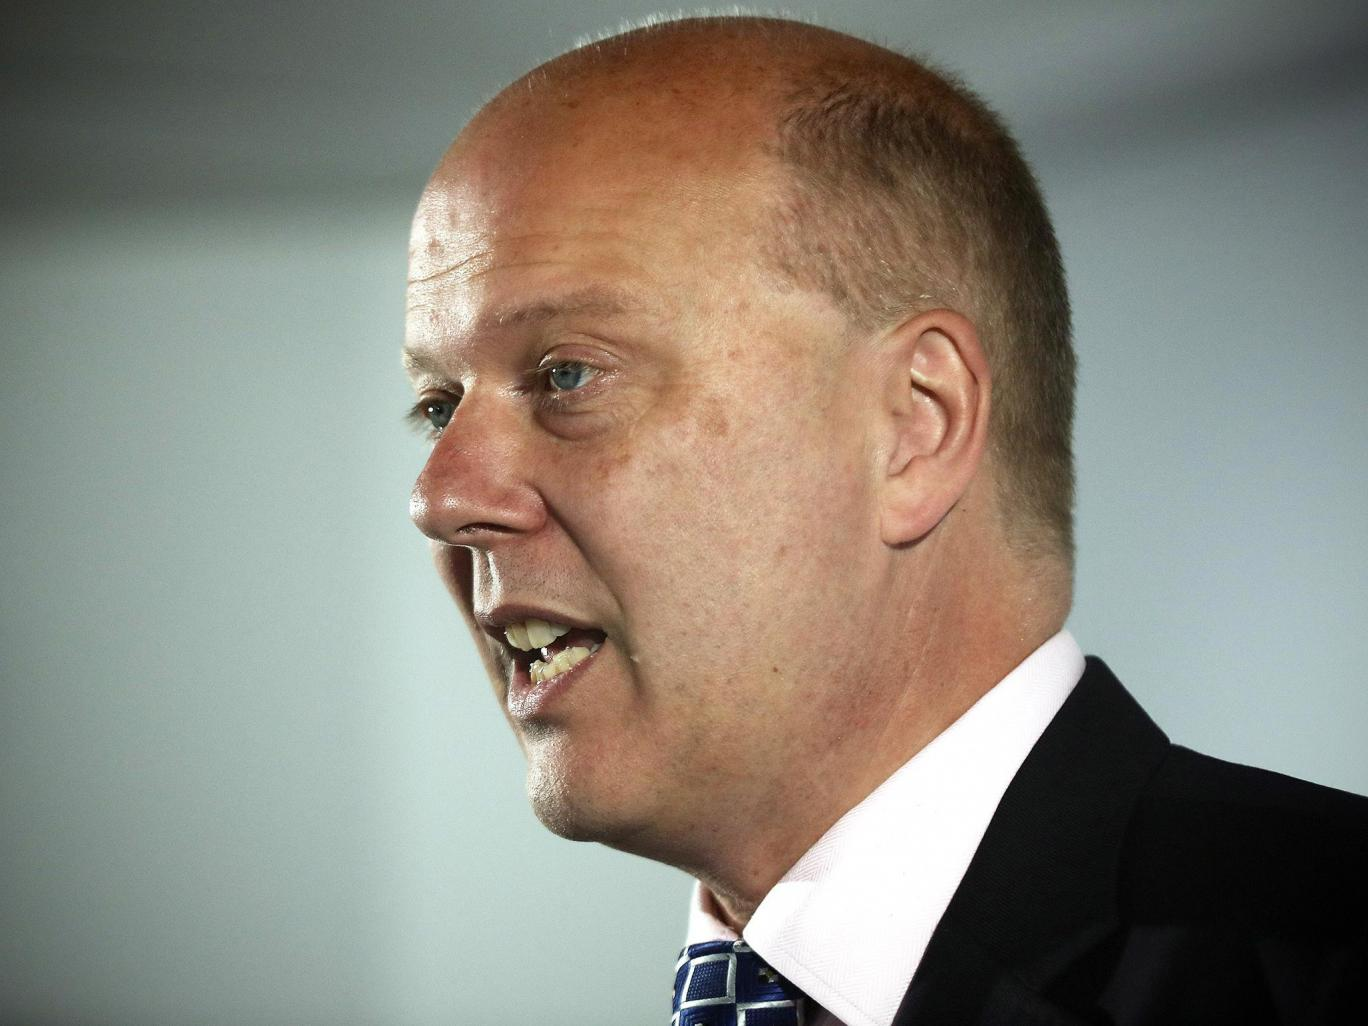 Chris Grayling appointed UK's Transport Secretary